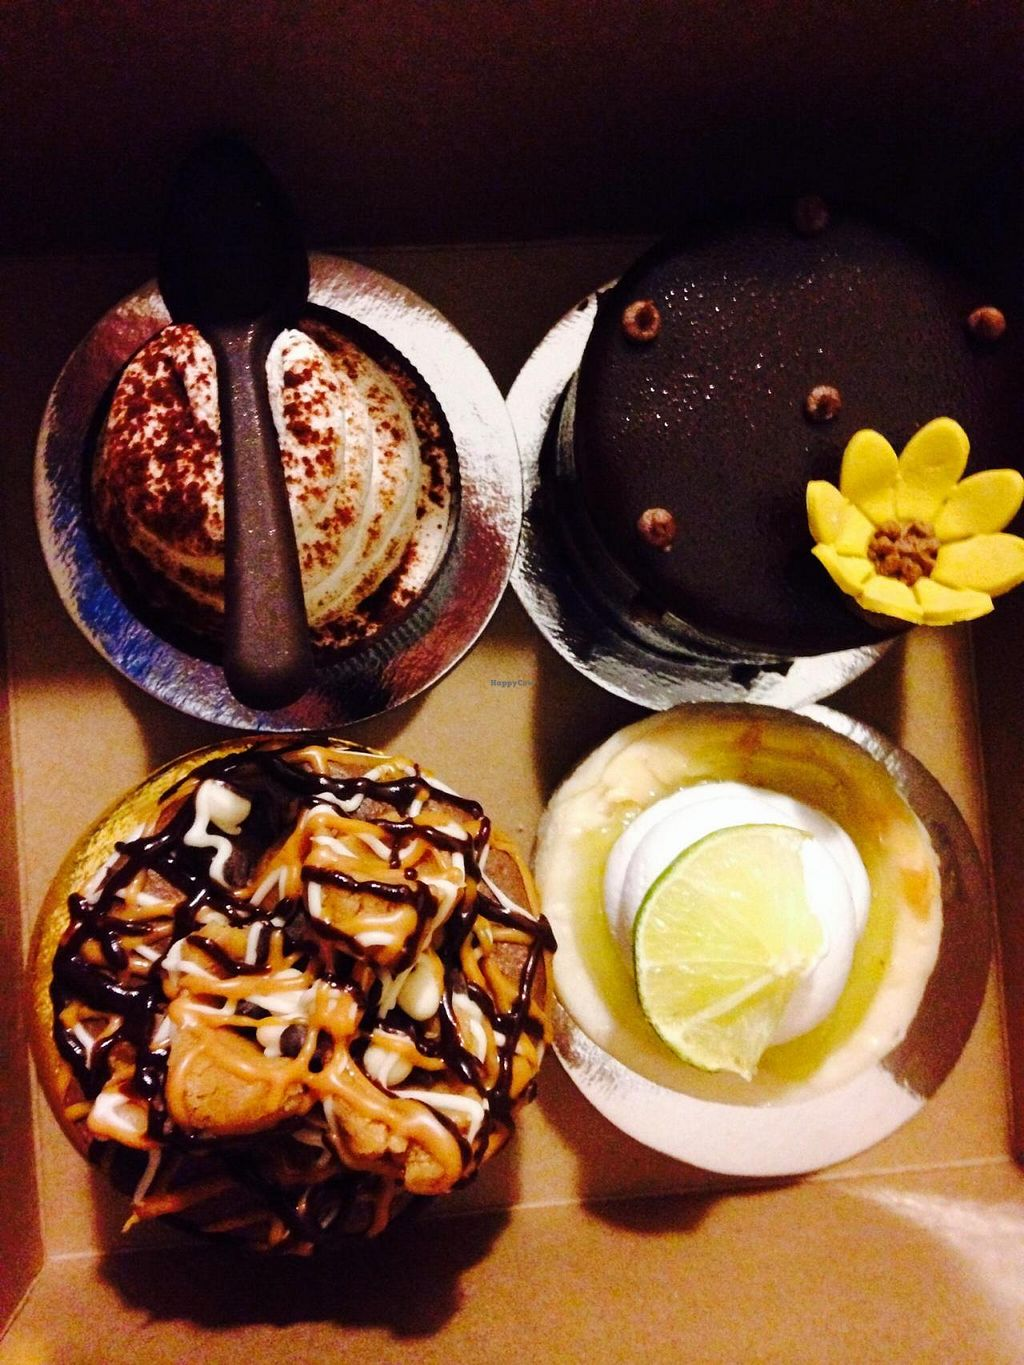 """Photo of Vegan Treats Bakery  by <a href=""""/members/profile/cookiem"""">cookiem</a> <br/>French pastries- gluten free <br/> September 16, 2014  - <a href='/contact/abuse/image/6784/80146'>Report</a>"""